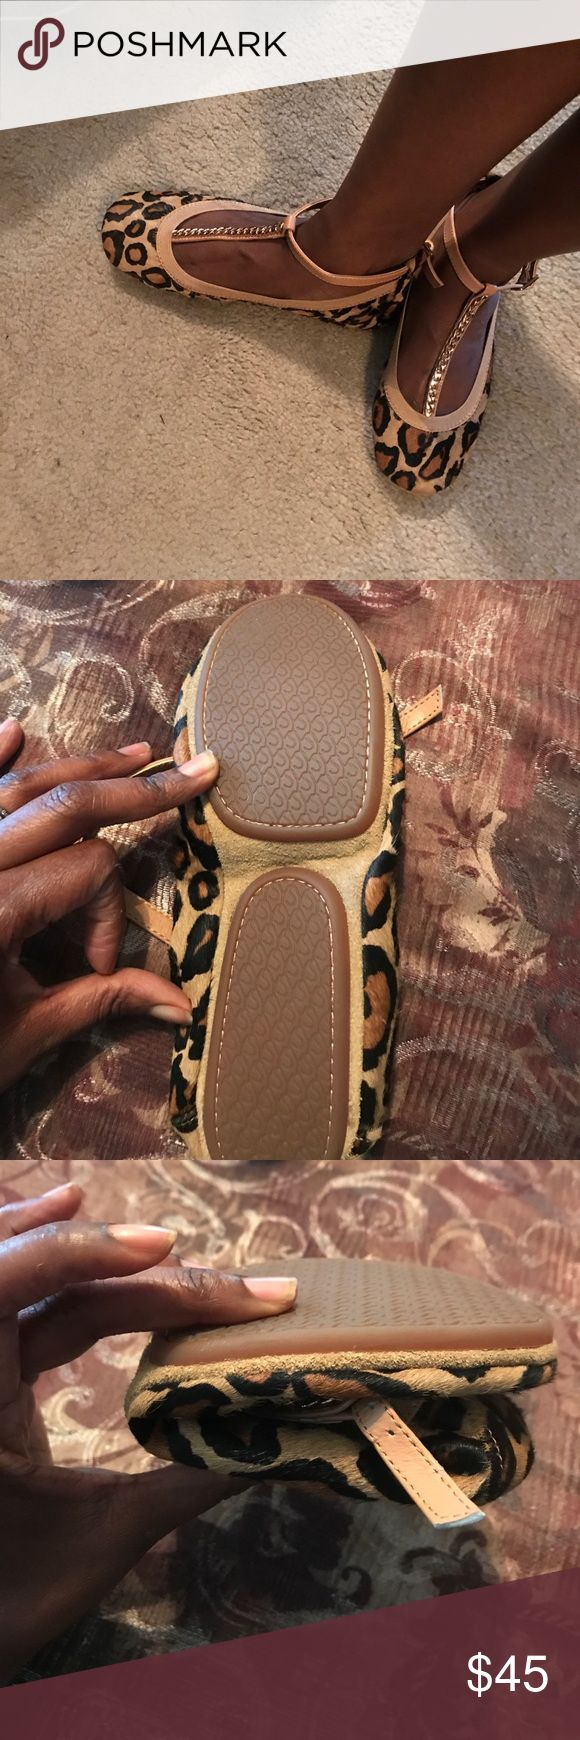 Never worn new leopard print foldable ballet flats What's a girl to do when her heels  start to hurt??? She better have her ballet flats in her purse. never worn foldable ballet flats. Stylish leopard print. Comes with carrying bag and in box. Yosi Samra Shoes Flats & Loafers